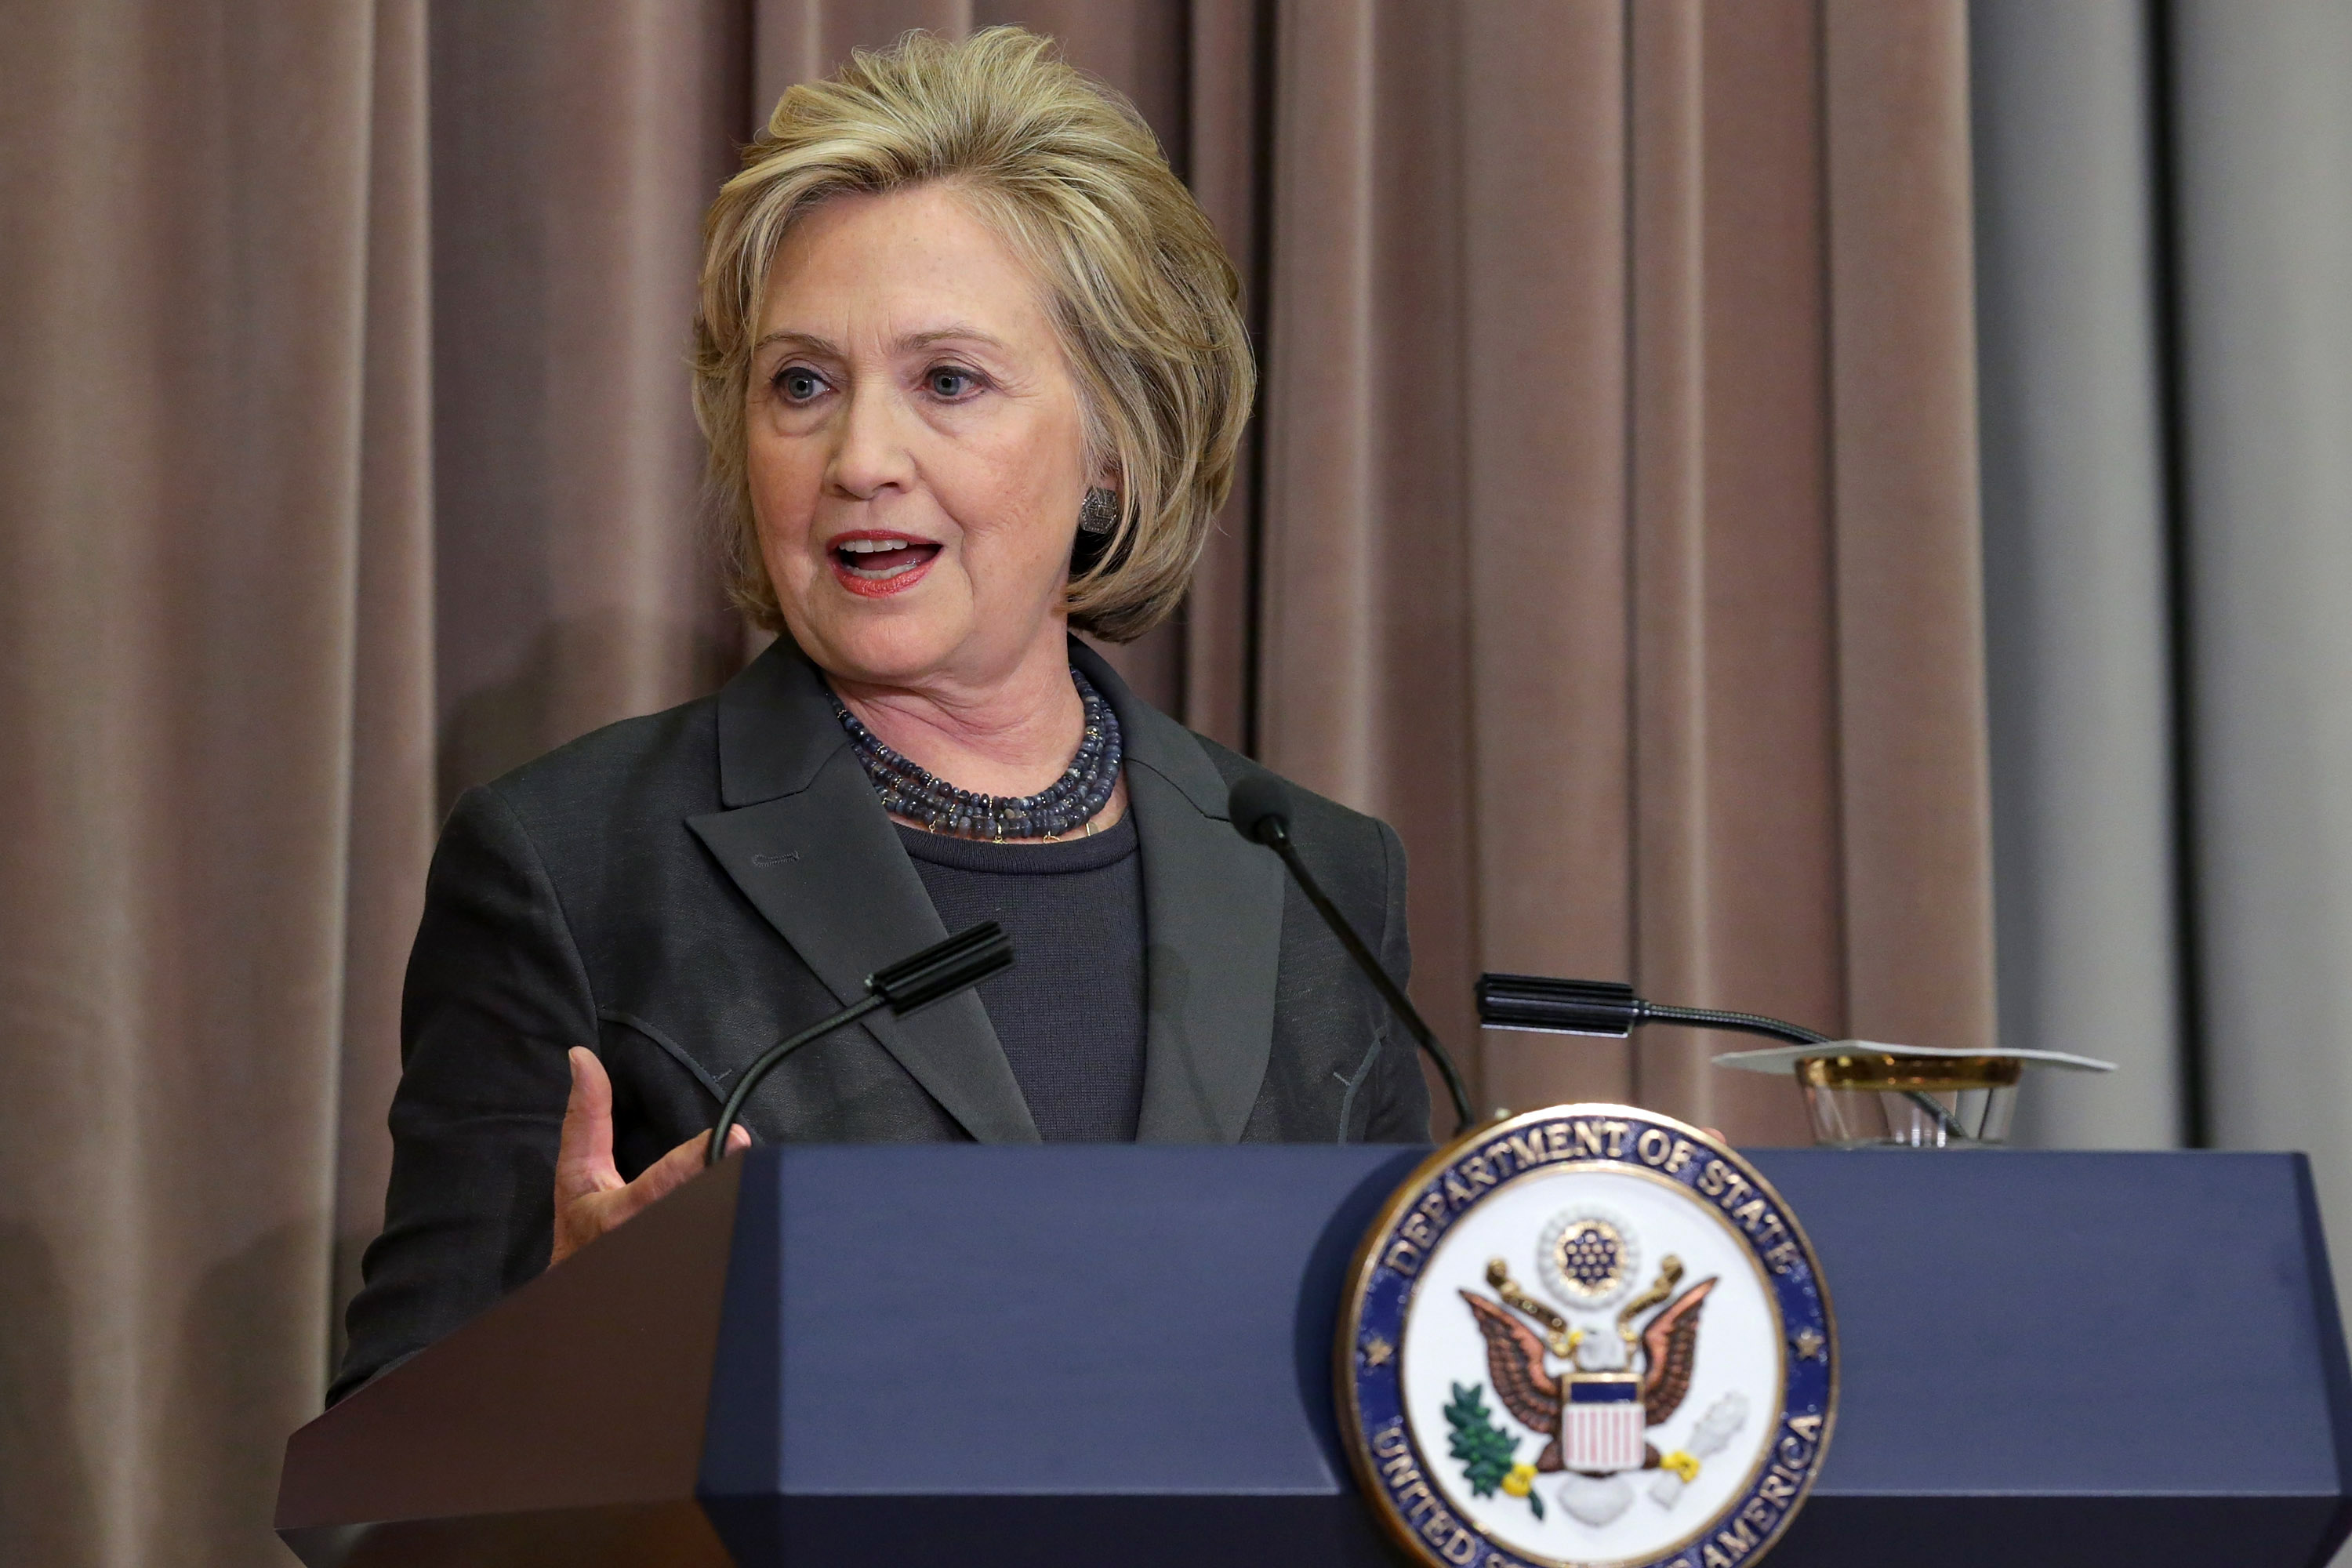 Former Secretary of State Hillary Clinton delivers remarks during the ceremonial groundbreaking of the future U.S. Diplomacy Center at the State Department's Harry S. Truman Building September 3, 2014 in Washington, DC.